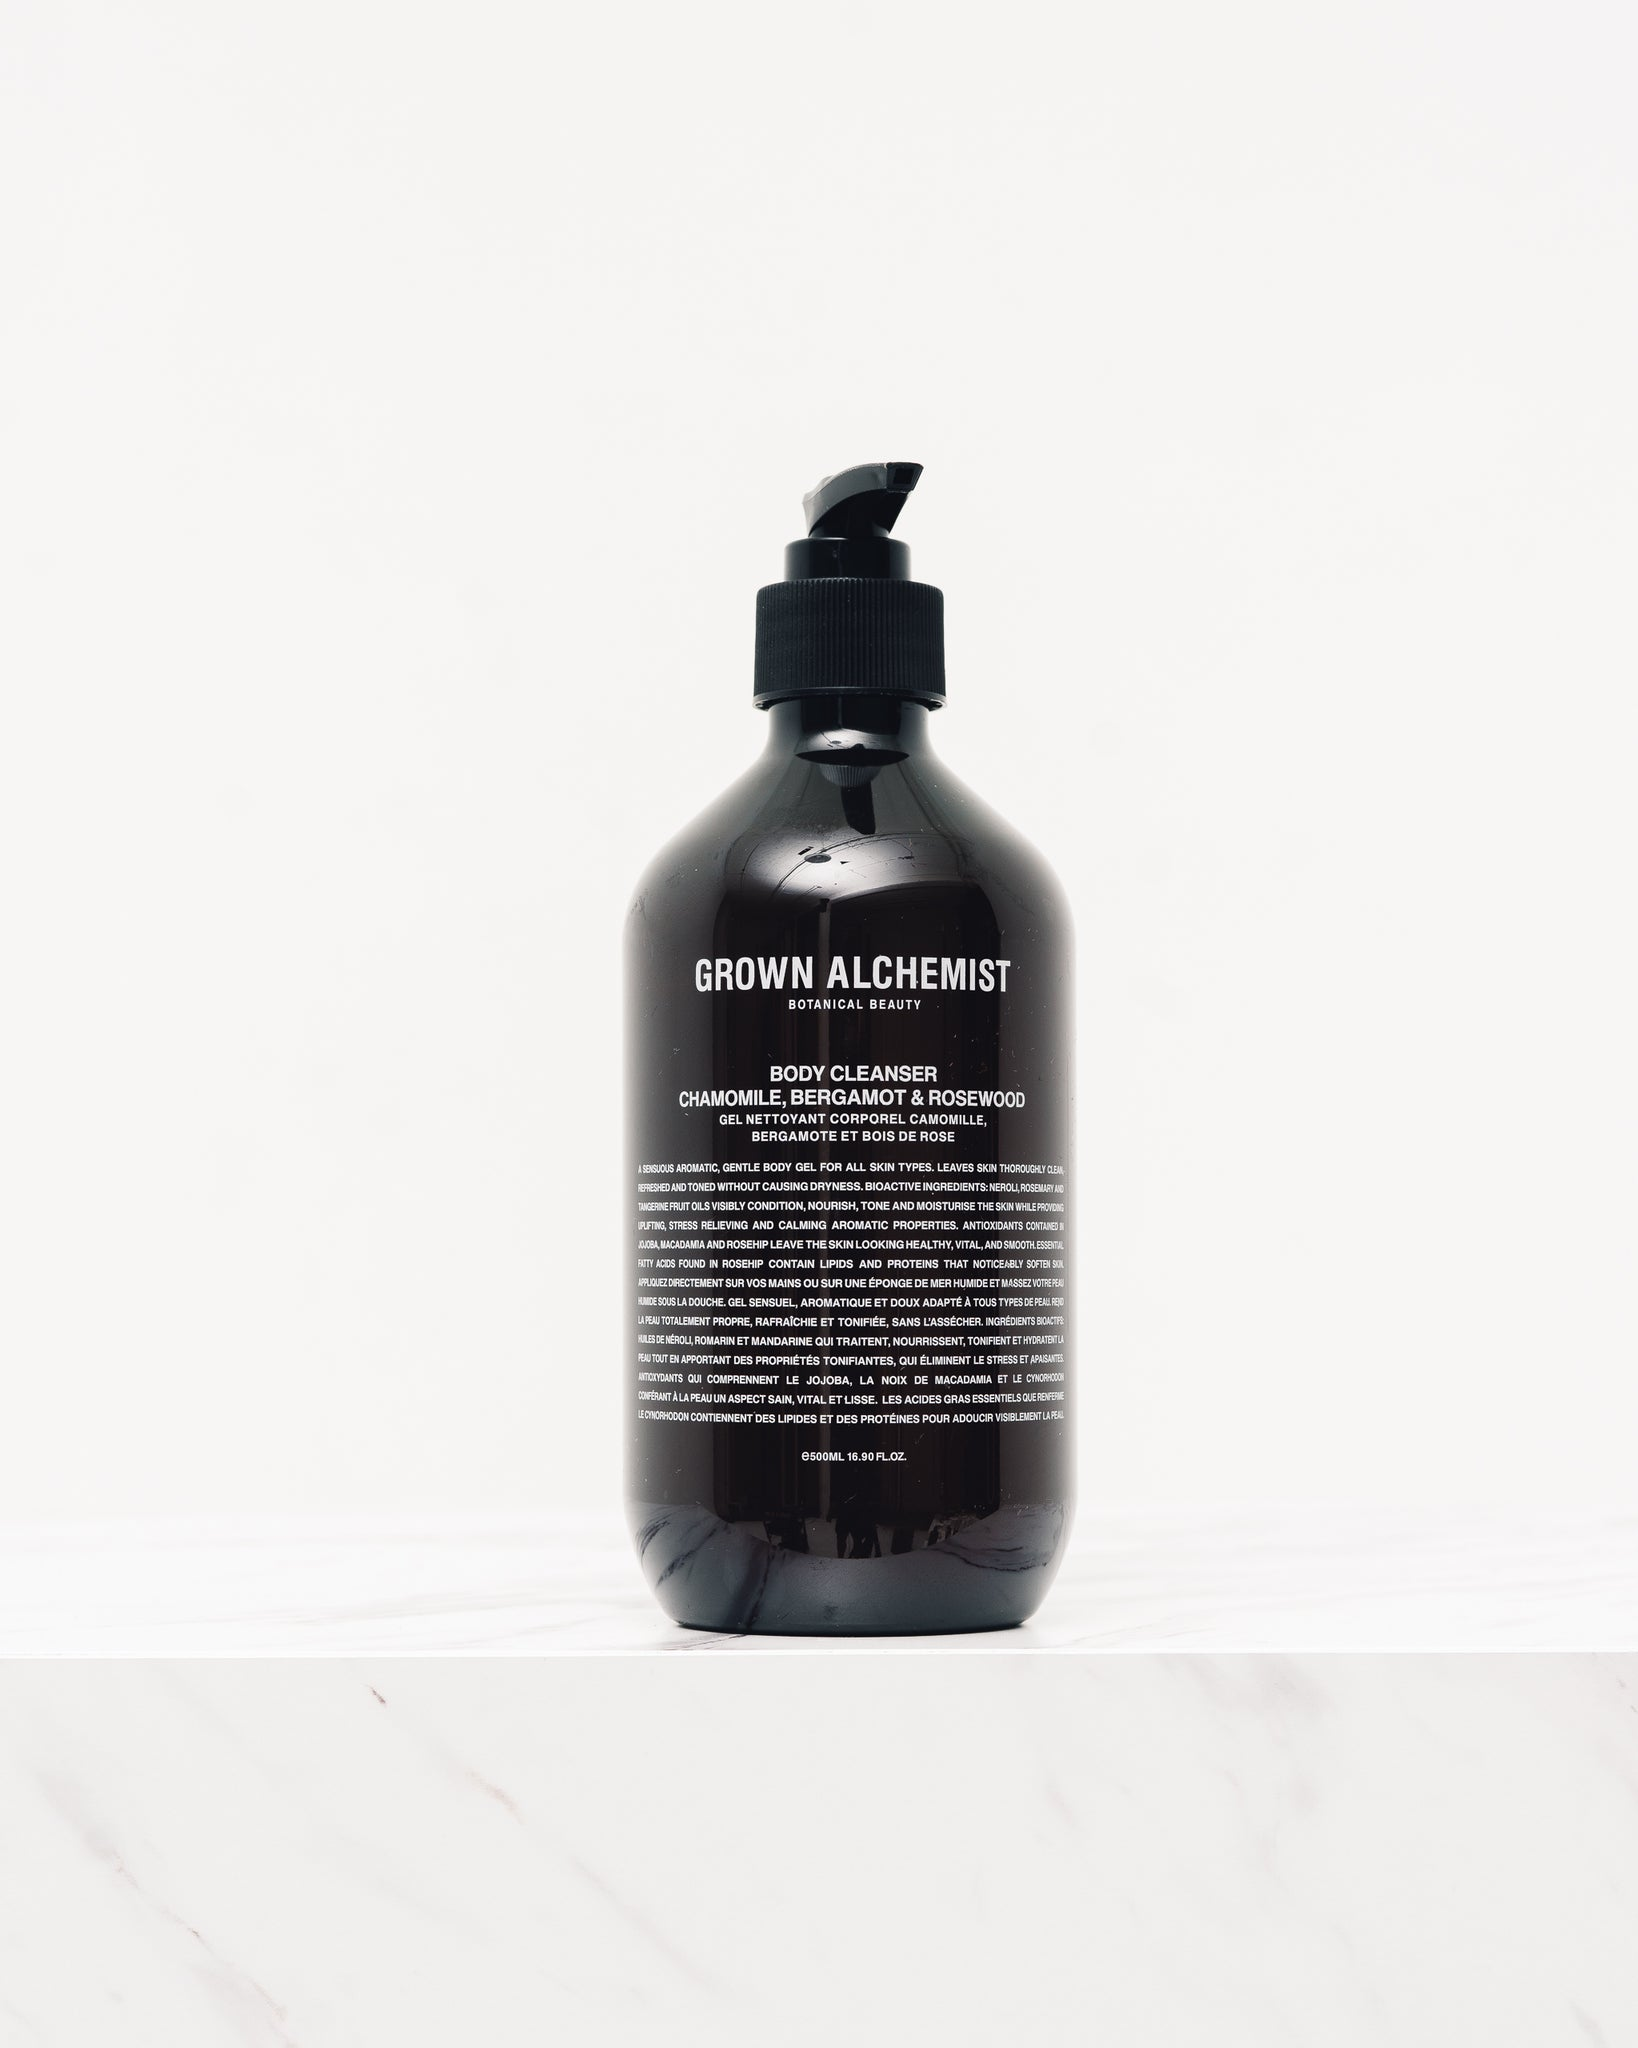 Grown Alchemist Body Cleanser, Chamomile, Bergamot & Rosewood